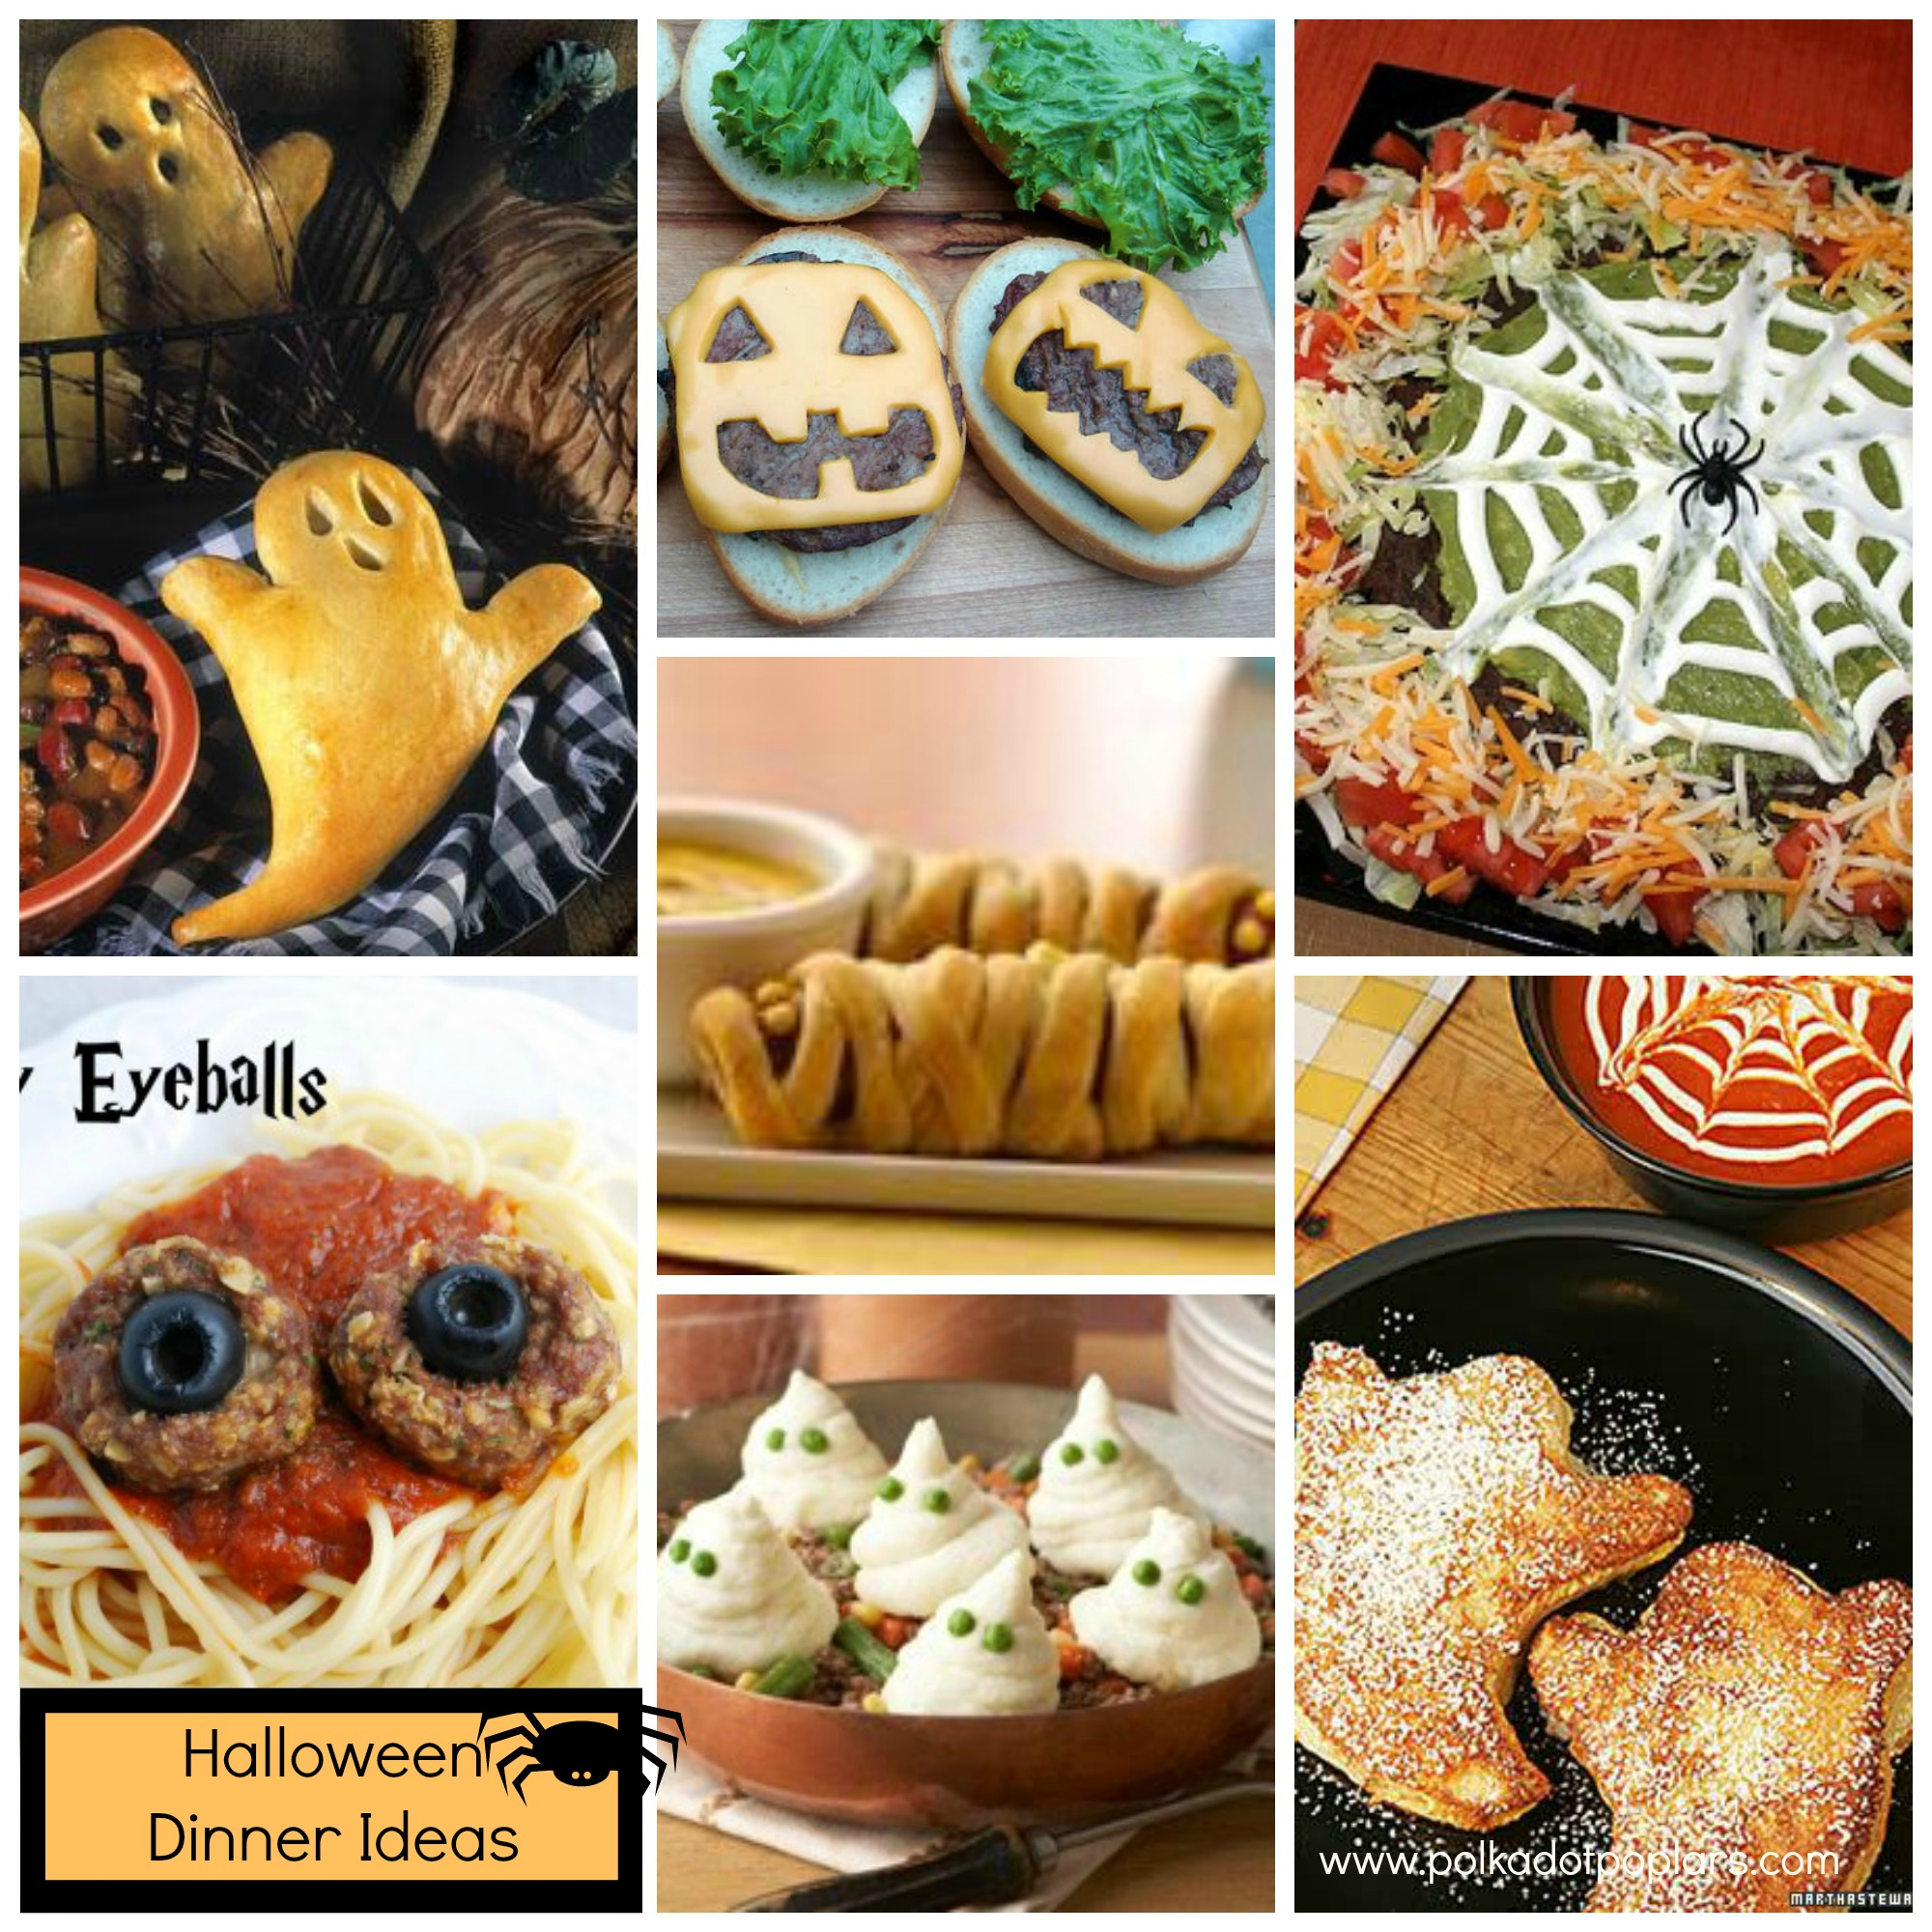 Halloween Dinner Party Menu Ideas Part - 24: Polkadotpoplars.com